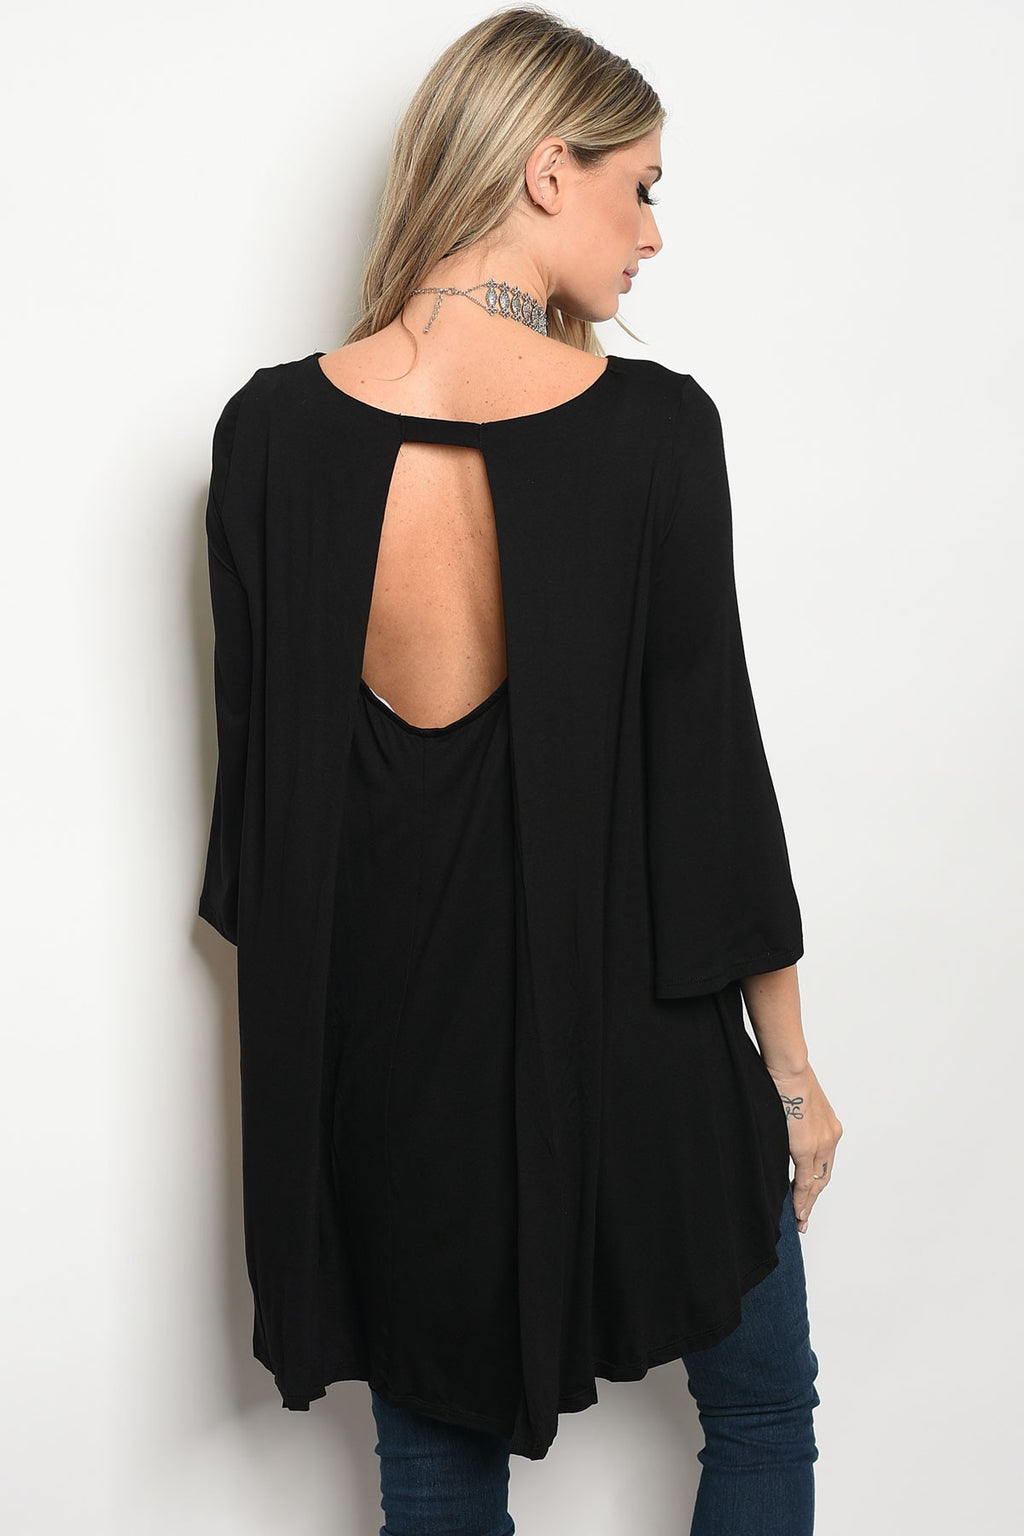 Black Top With Open Split Back